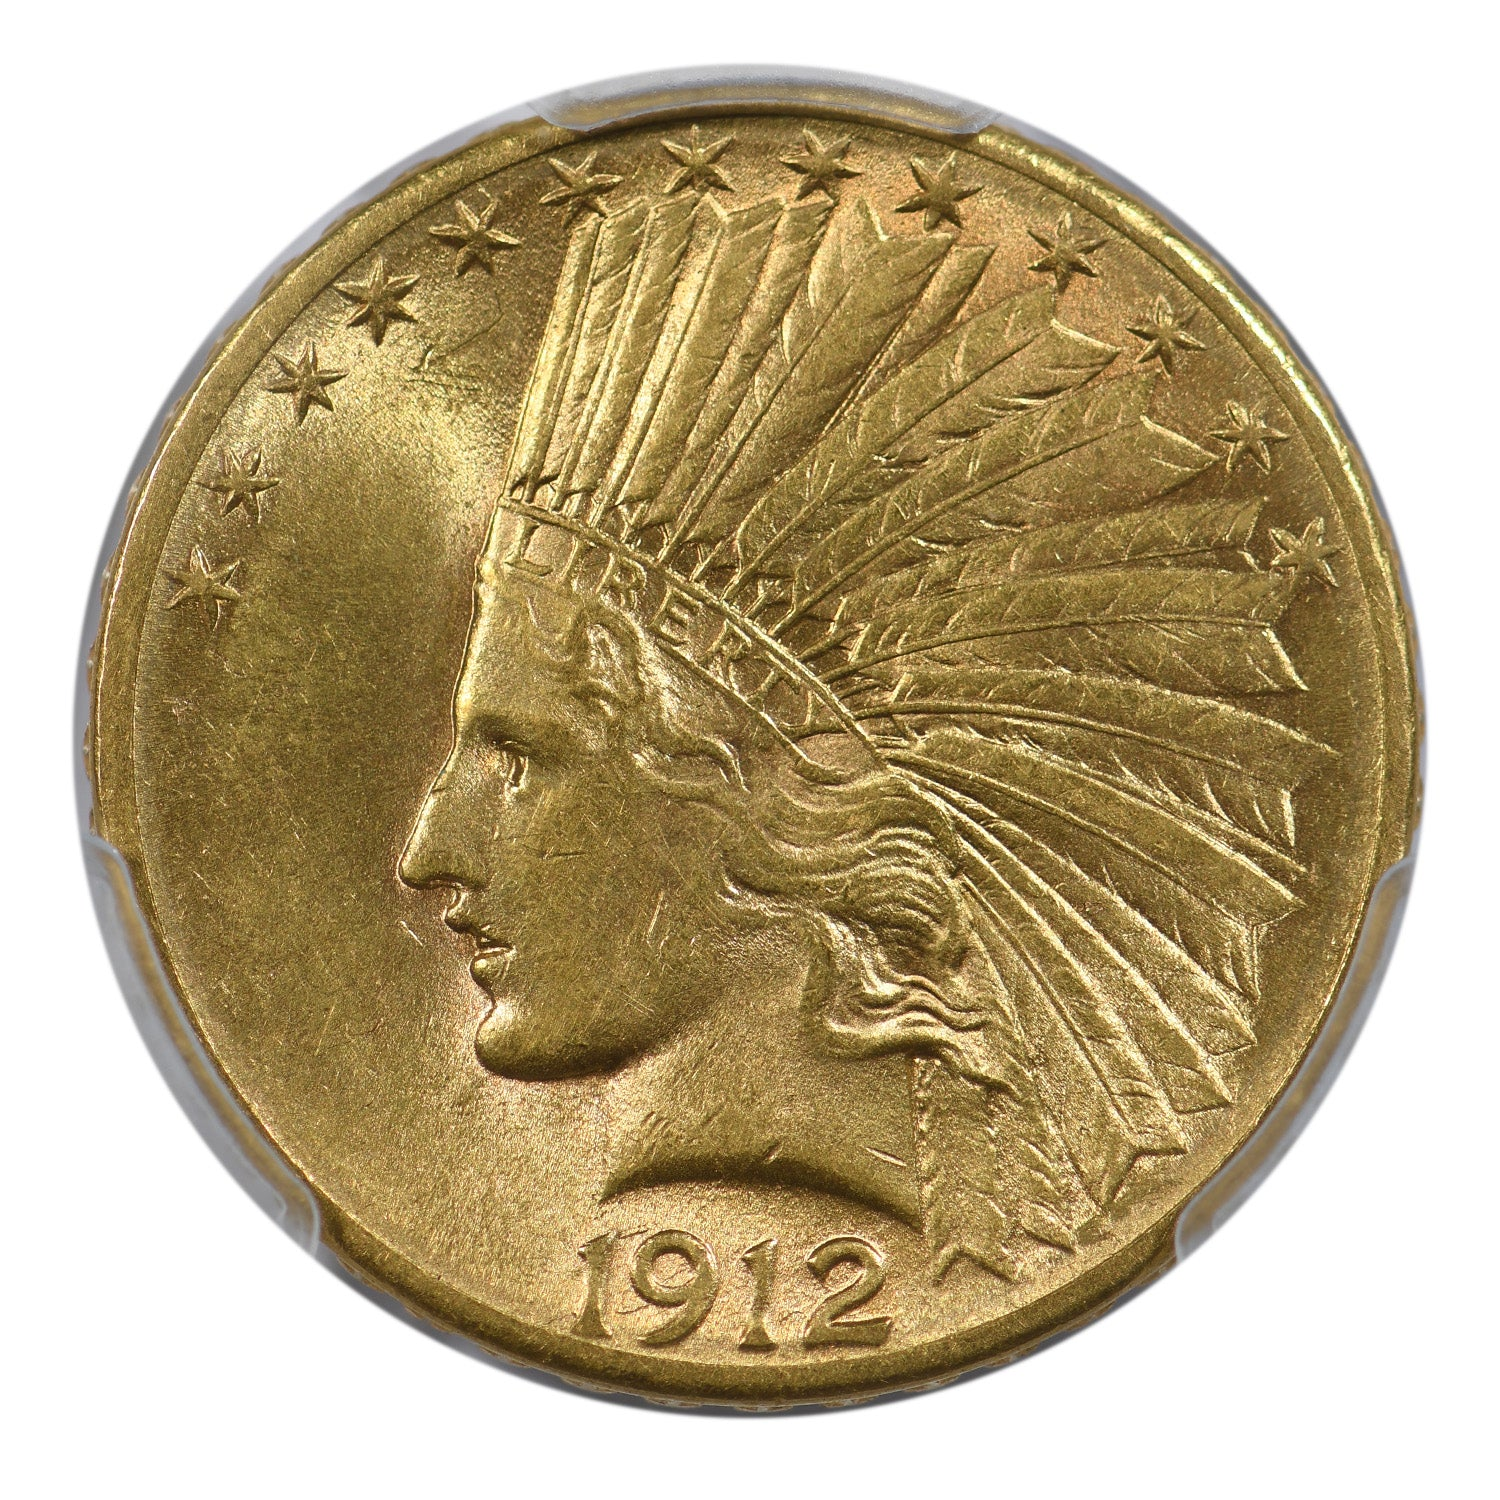 1912-S $10 Gold Indian Eagle PCGS AU58